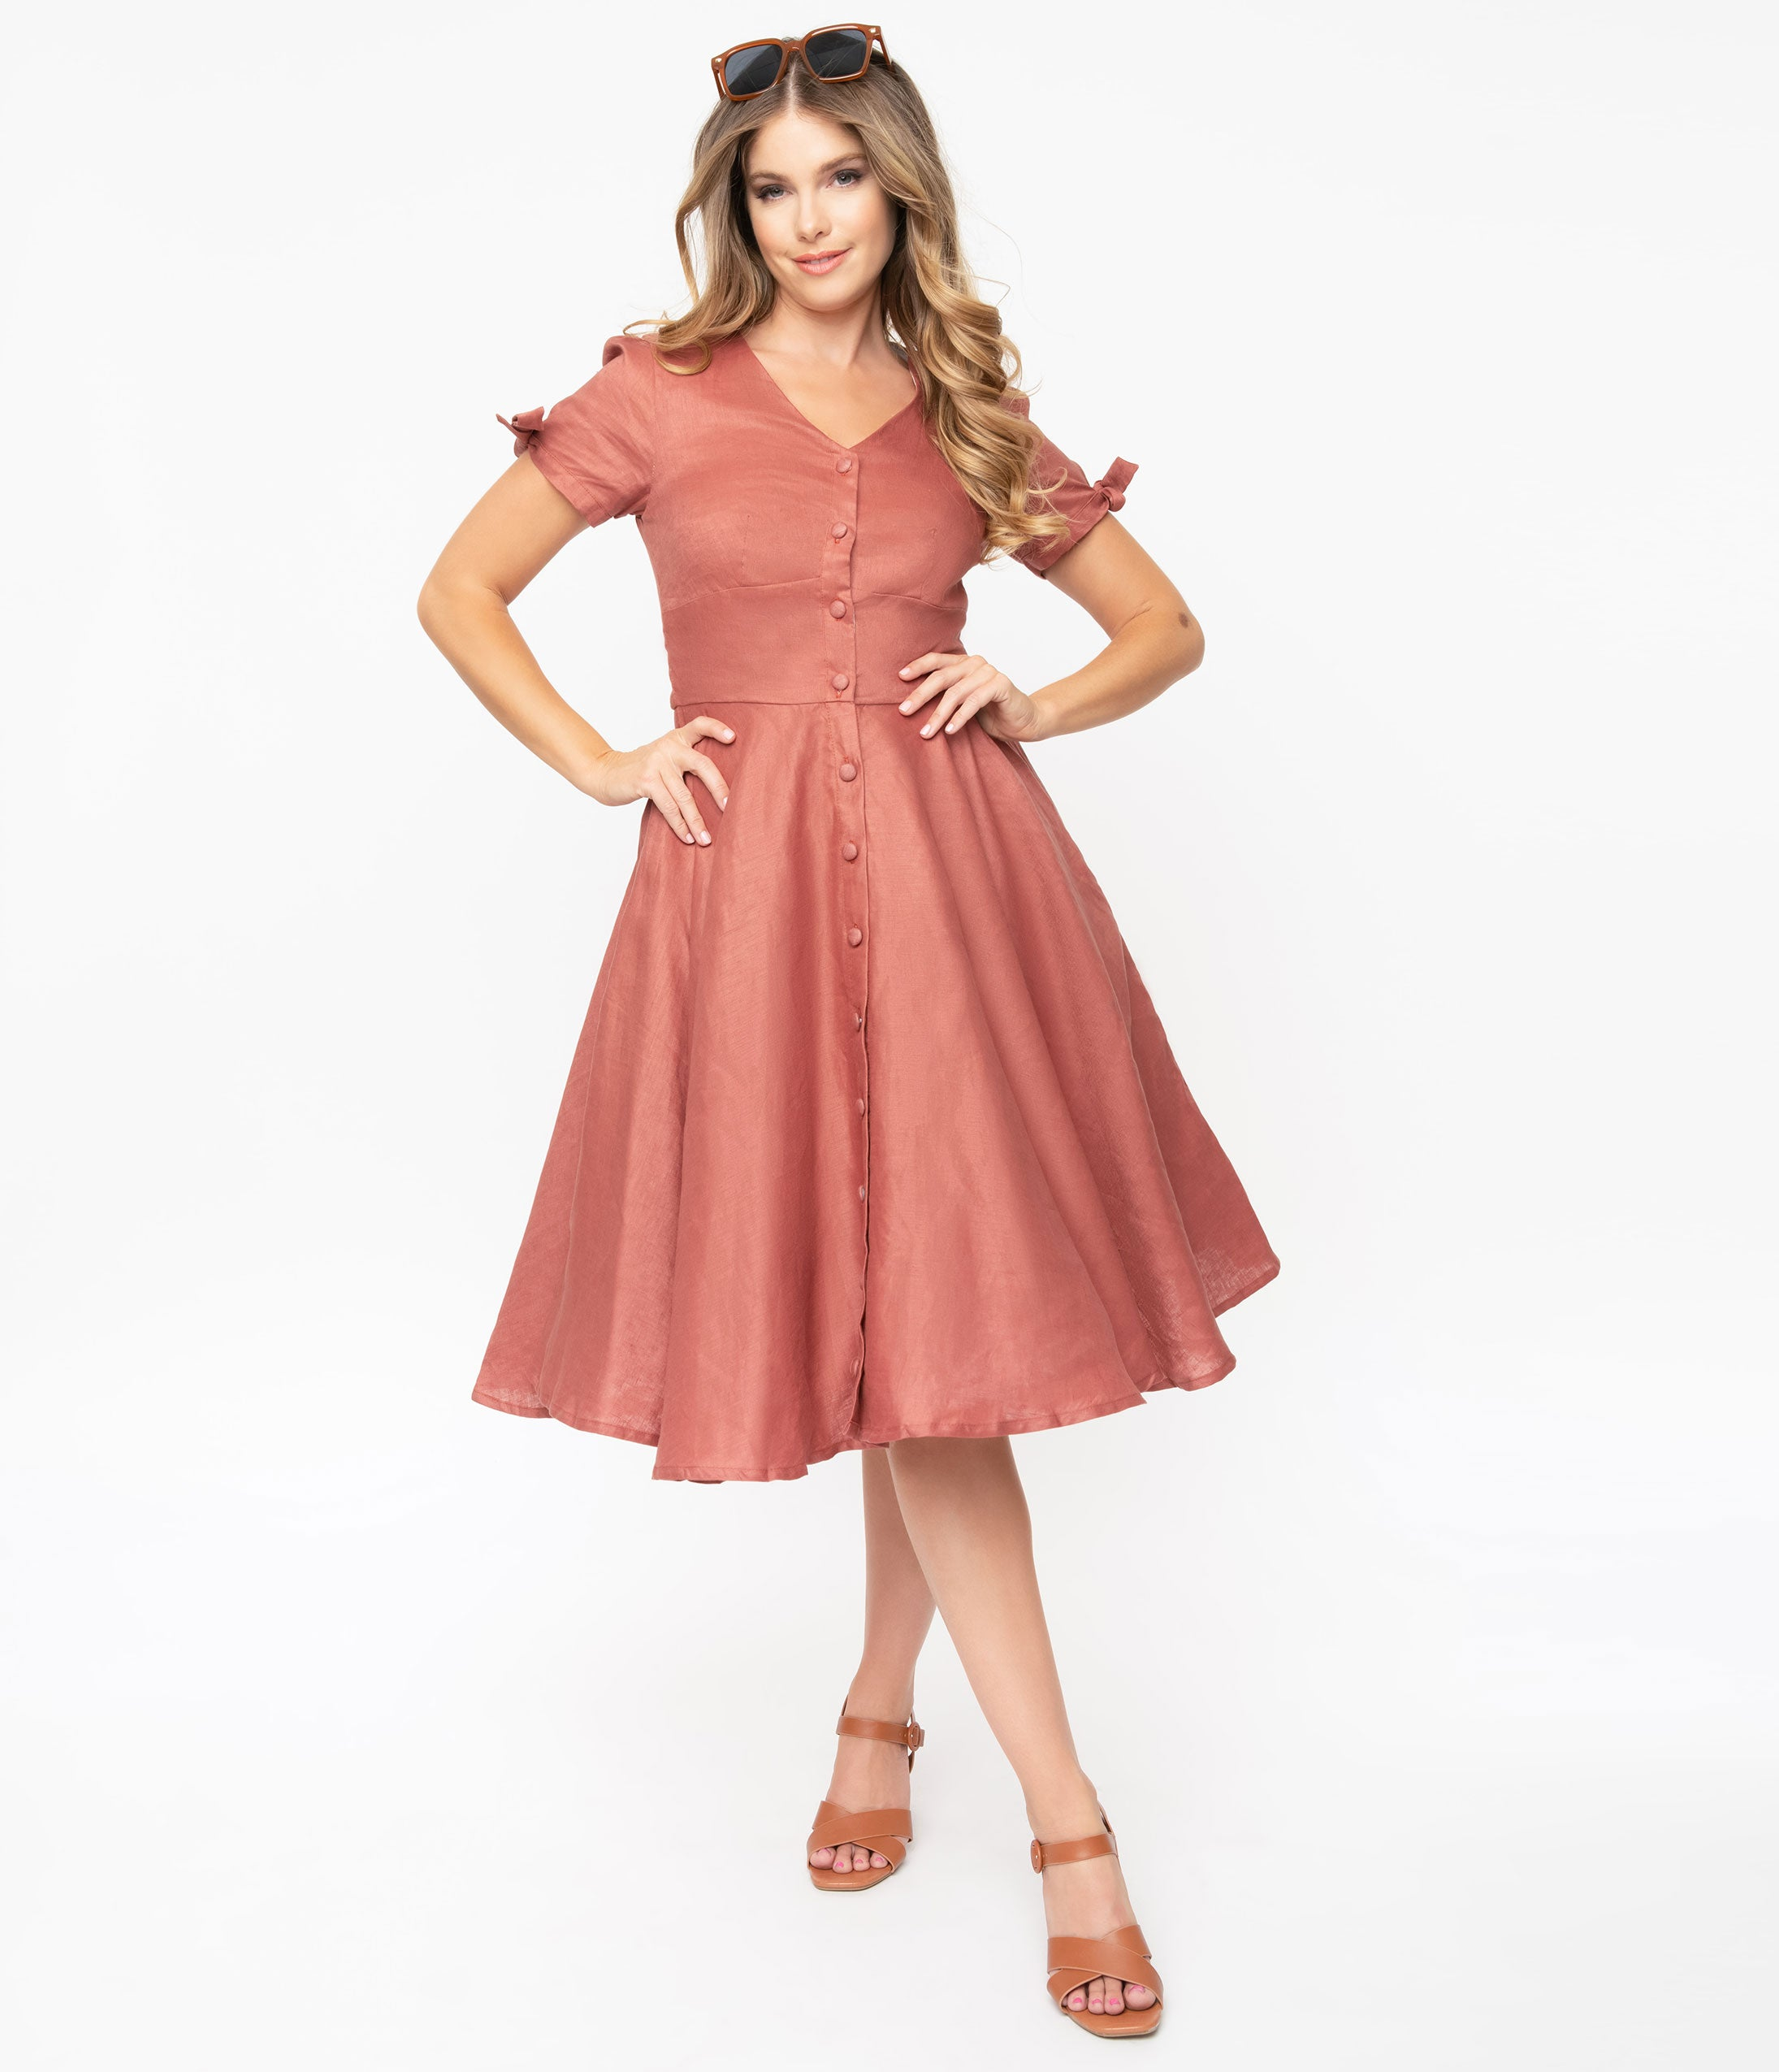 Fifties Dresses: 1950s Style Swing to Wiggle Dresses Magnolia Place Brick Red Swing Dress $98.00 AT vintagedancer.com